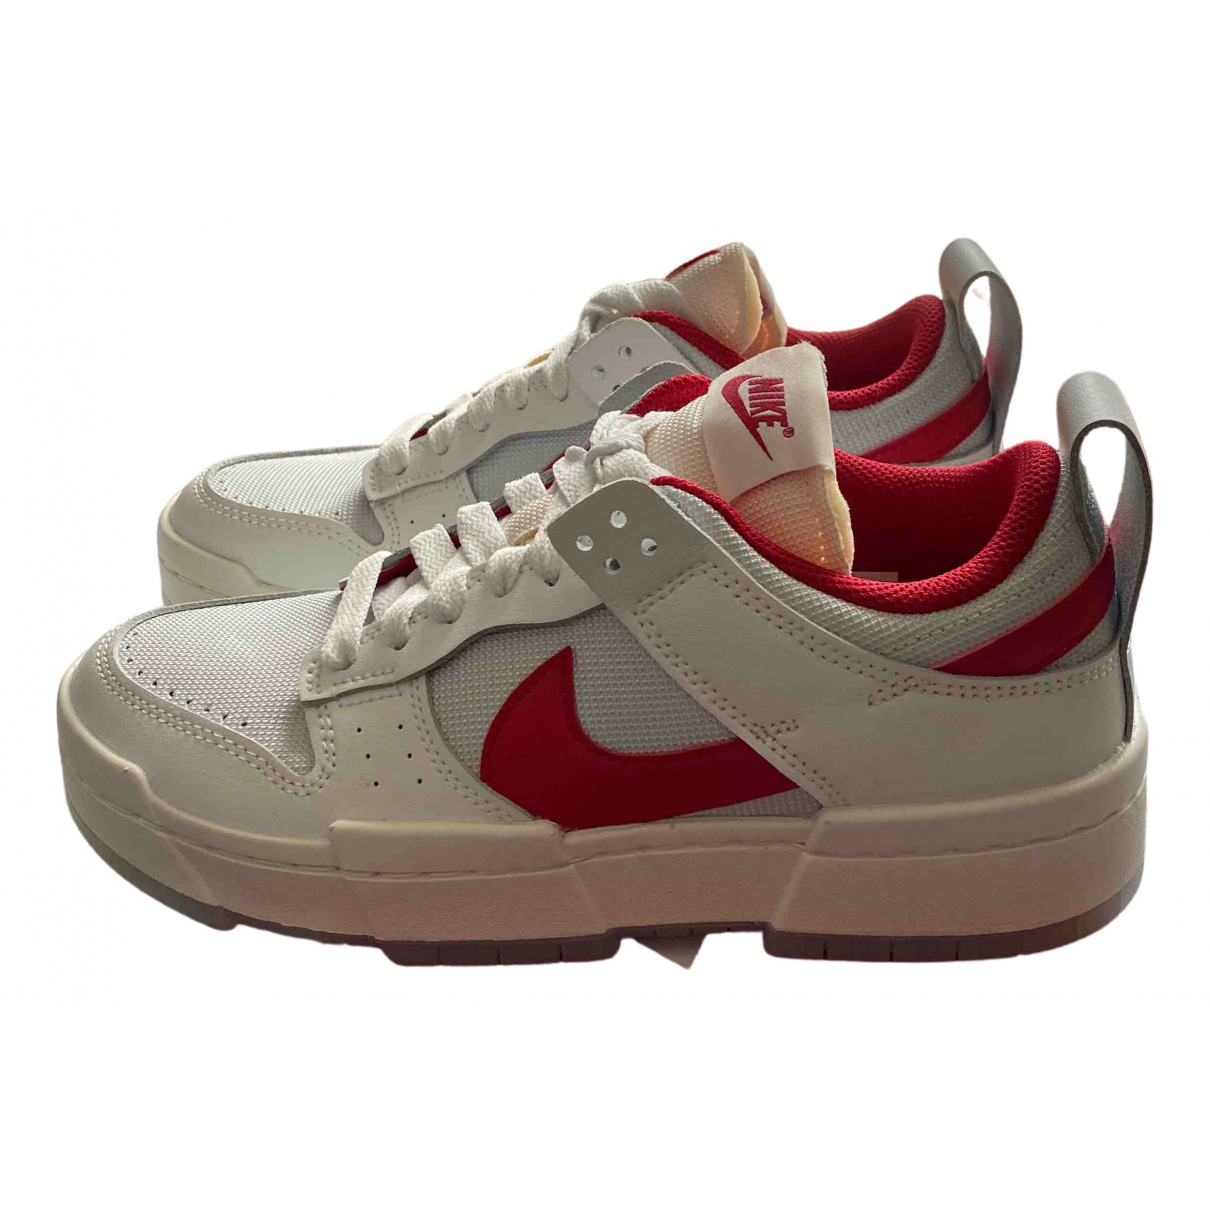 Nike SB Dunk  Red Leather Trainers for Women 38 EU